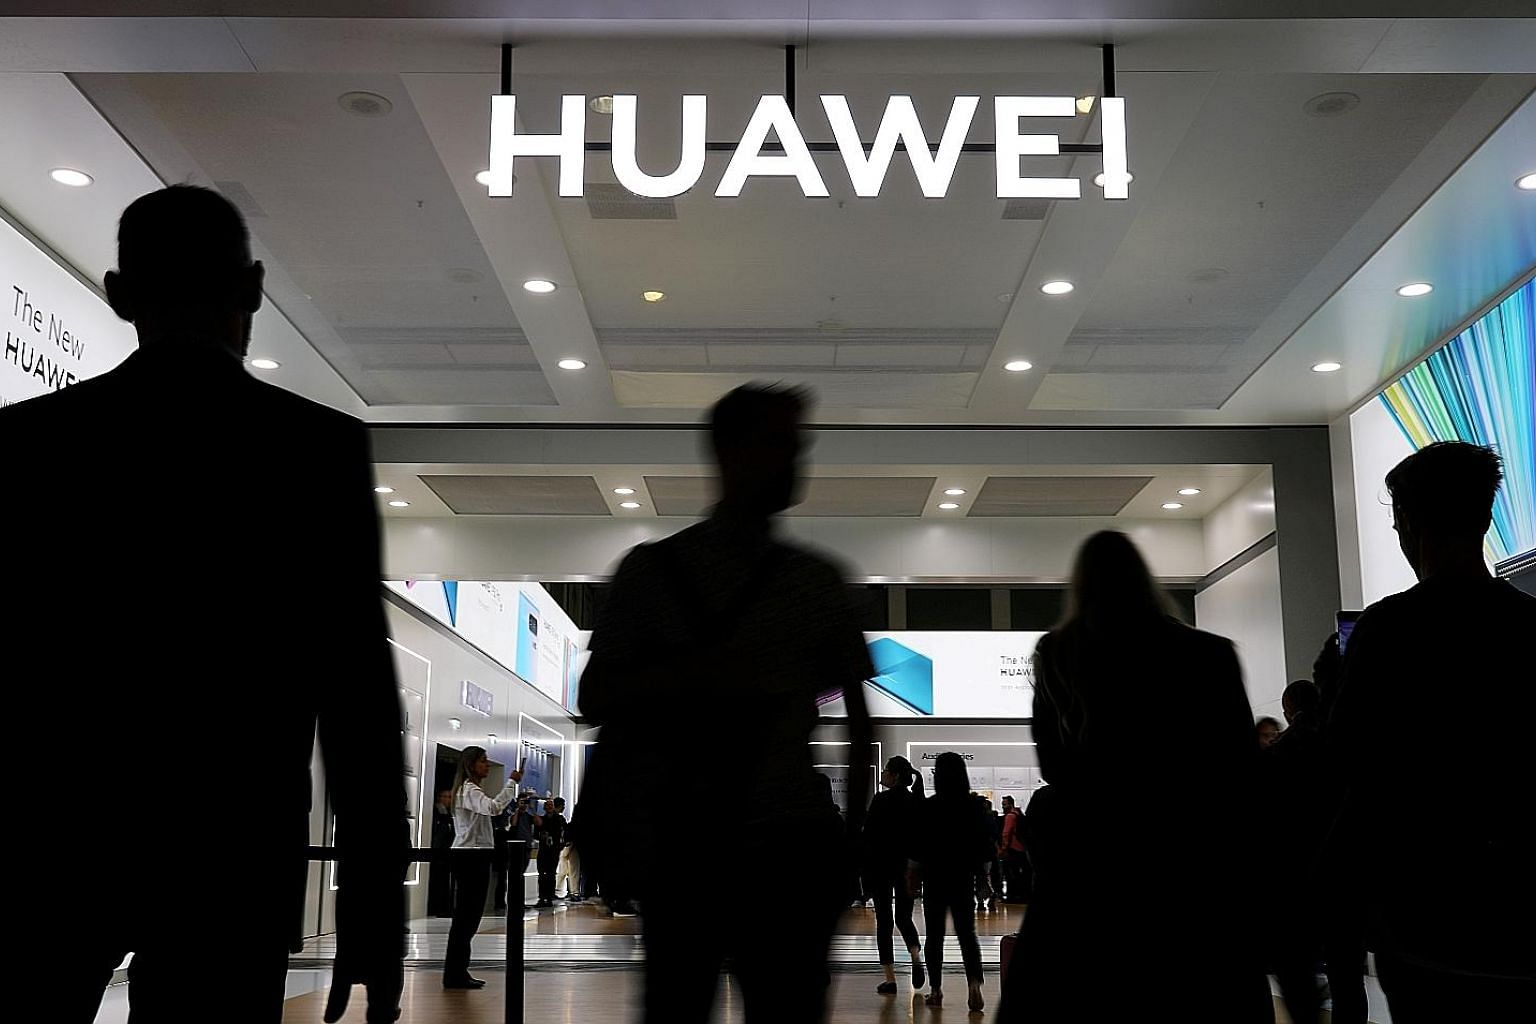 """Huawei founder Ren Zhengfei says the company is open to sharing its 5G technologies and techniques with US companies, so that they can build up their own 5G industry. But he adds that """"the US side has to accept us at some level for that to happen"""". P"""